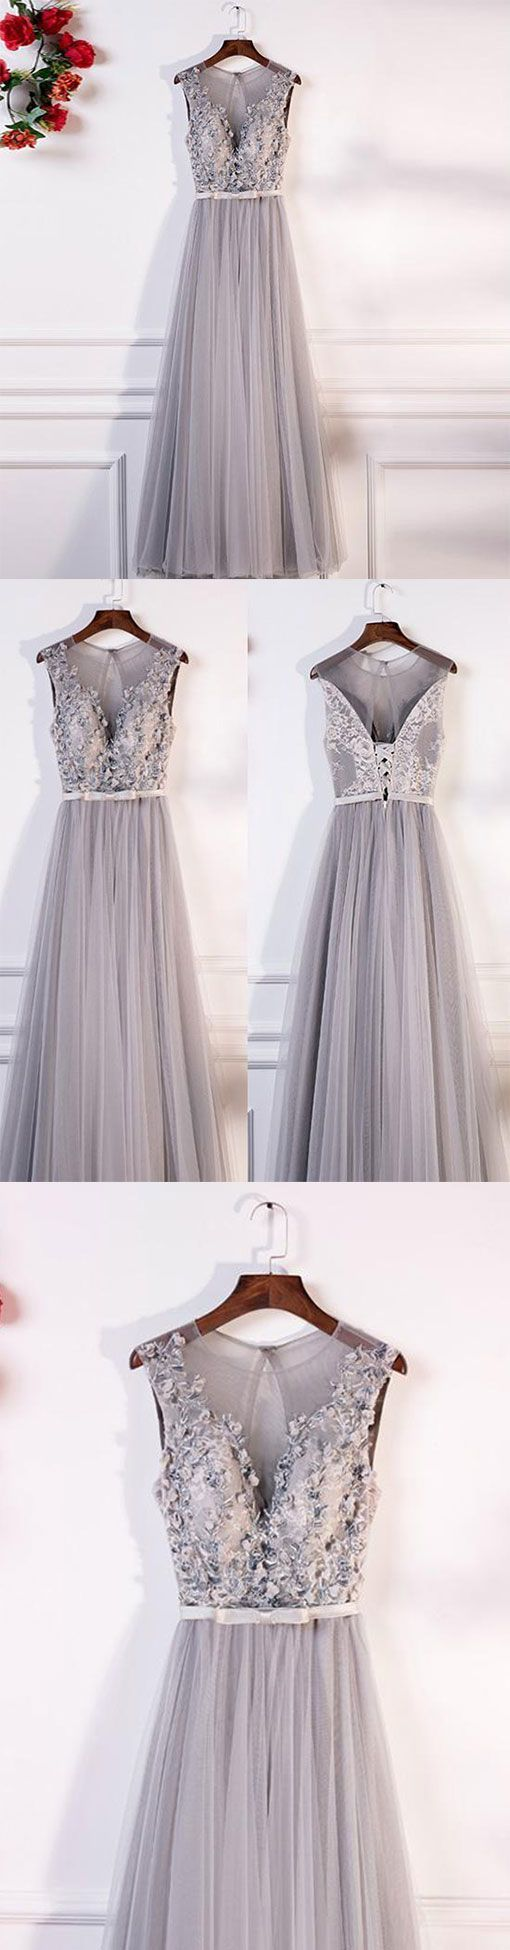 Gray round neck lace tulle long prom dress, gray evening dress, gray bridesmaid